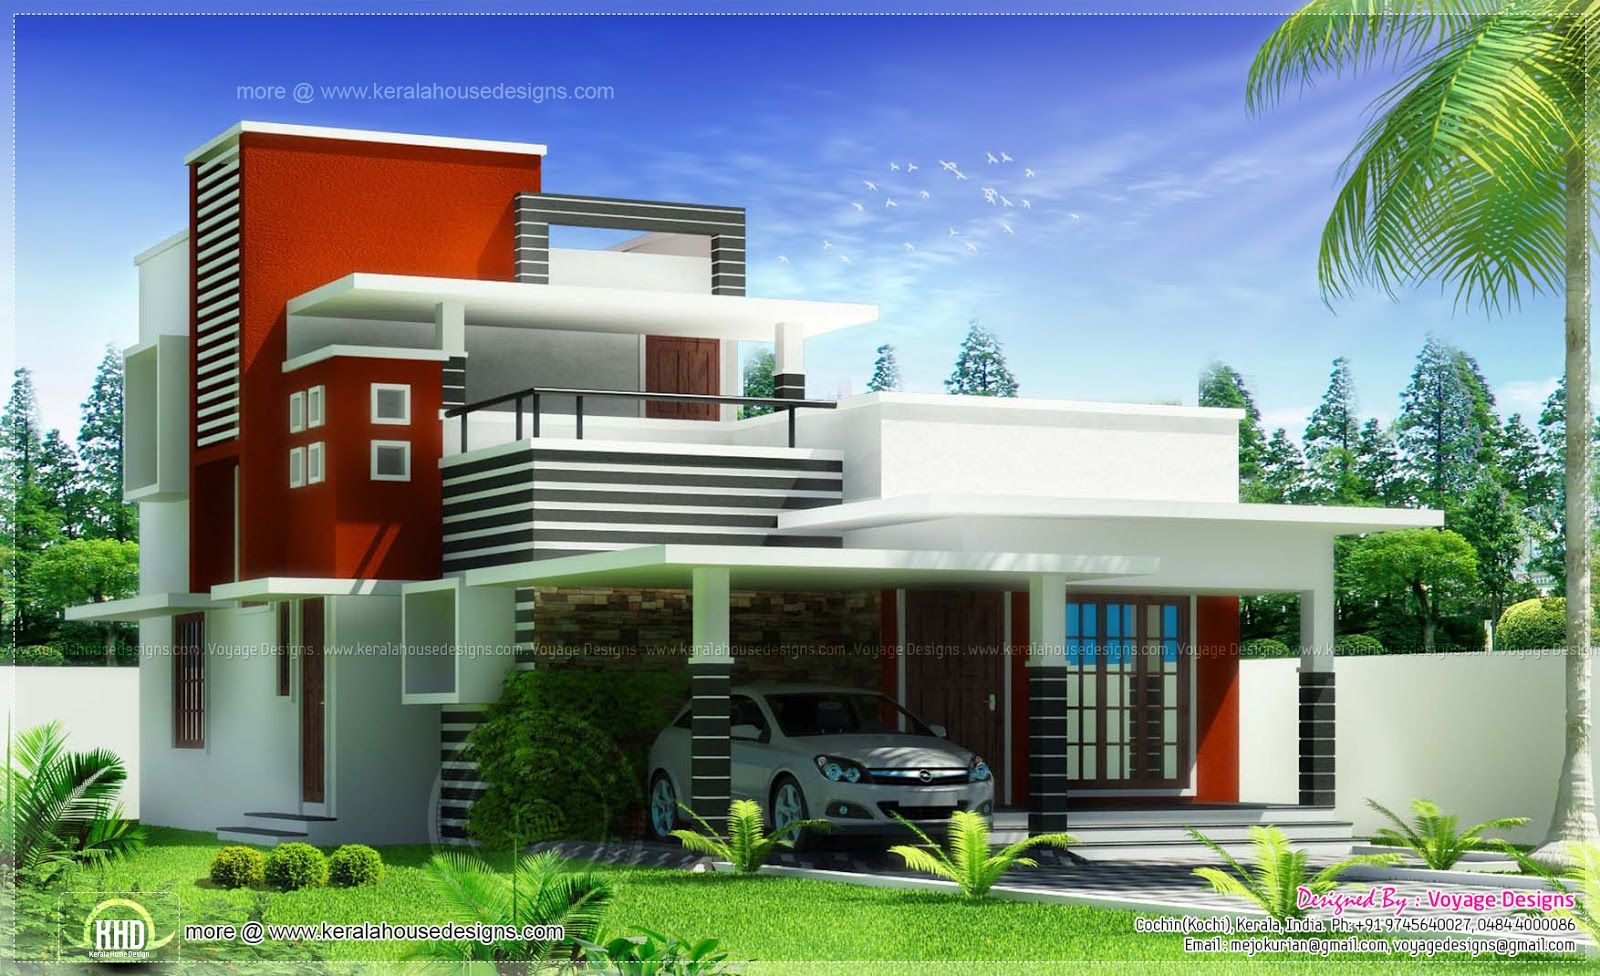 Kerala house designs architecture pinterest kerala for New kerala house plans with front elevation